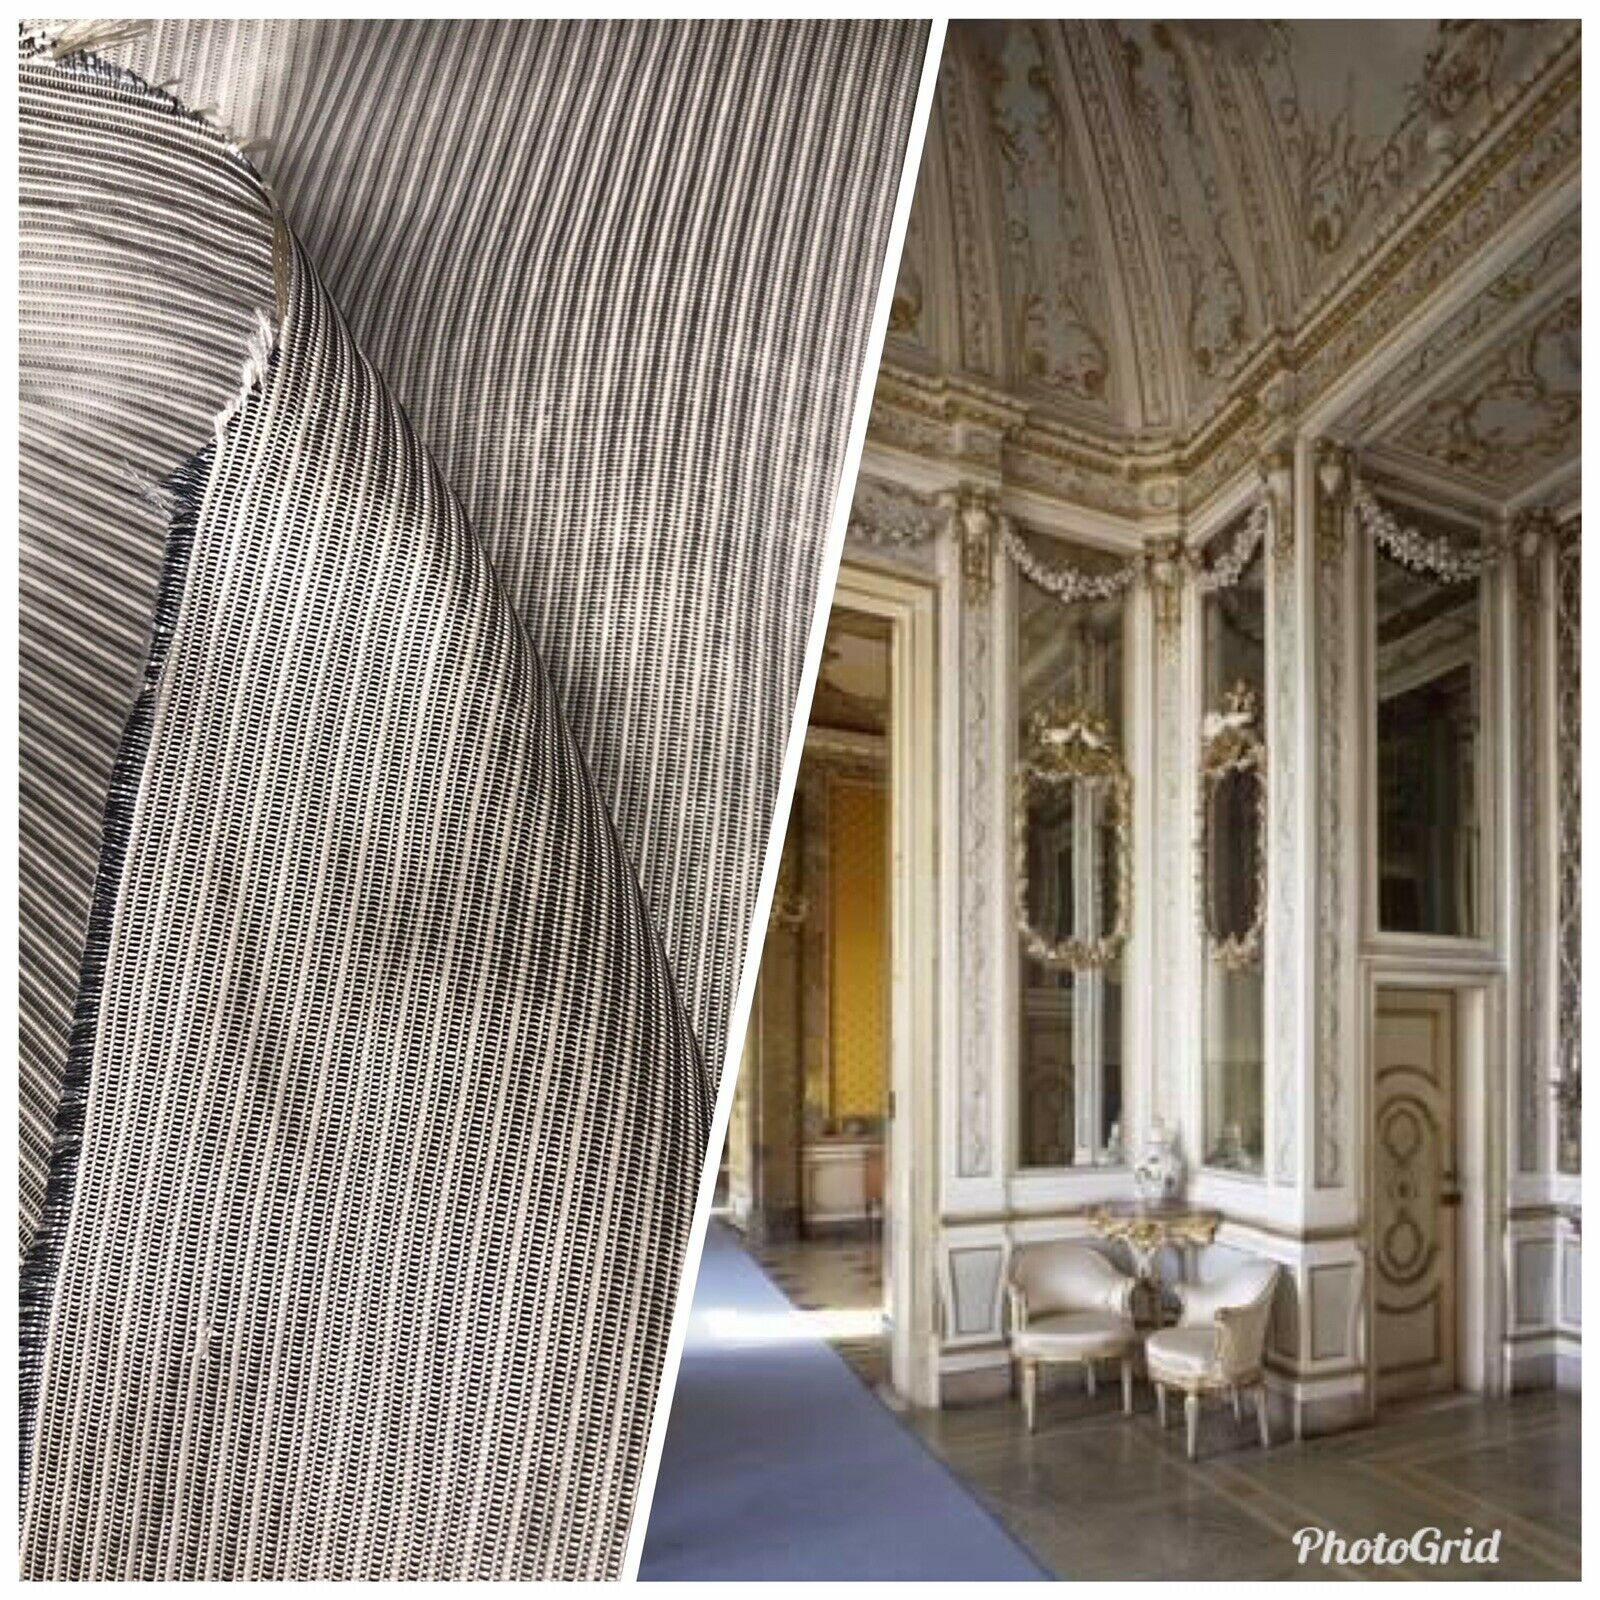 SALE! Designer 100% Silk Dupioni Grey White Pinstripe Stripe Fabric Drapery